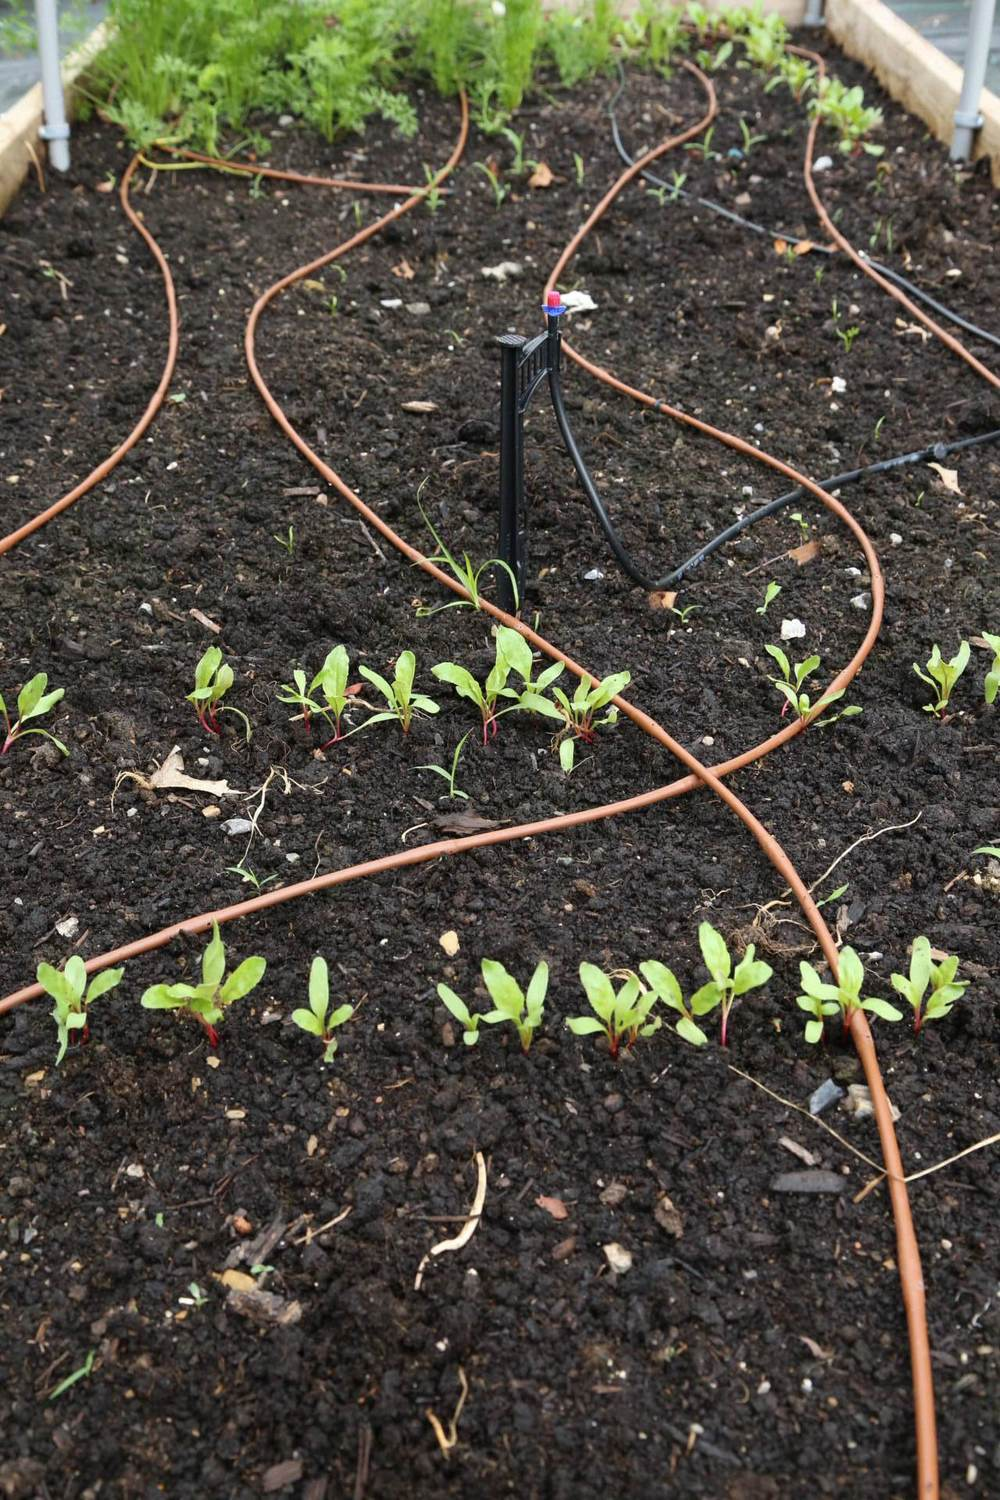 Quarter inch dripline along with a microsprinkler for seedlings. I don't highly recommend this particular microsprinkler since it seems to clog easily.